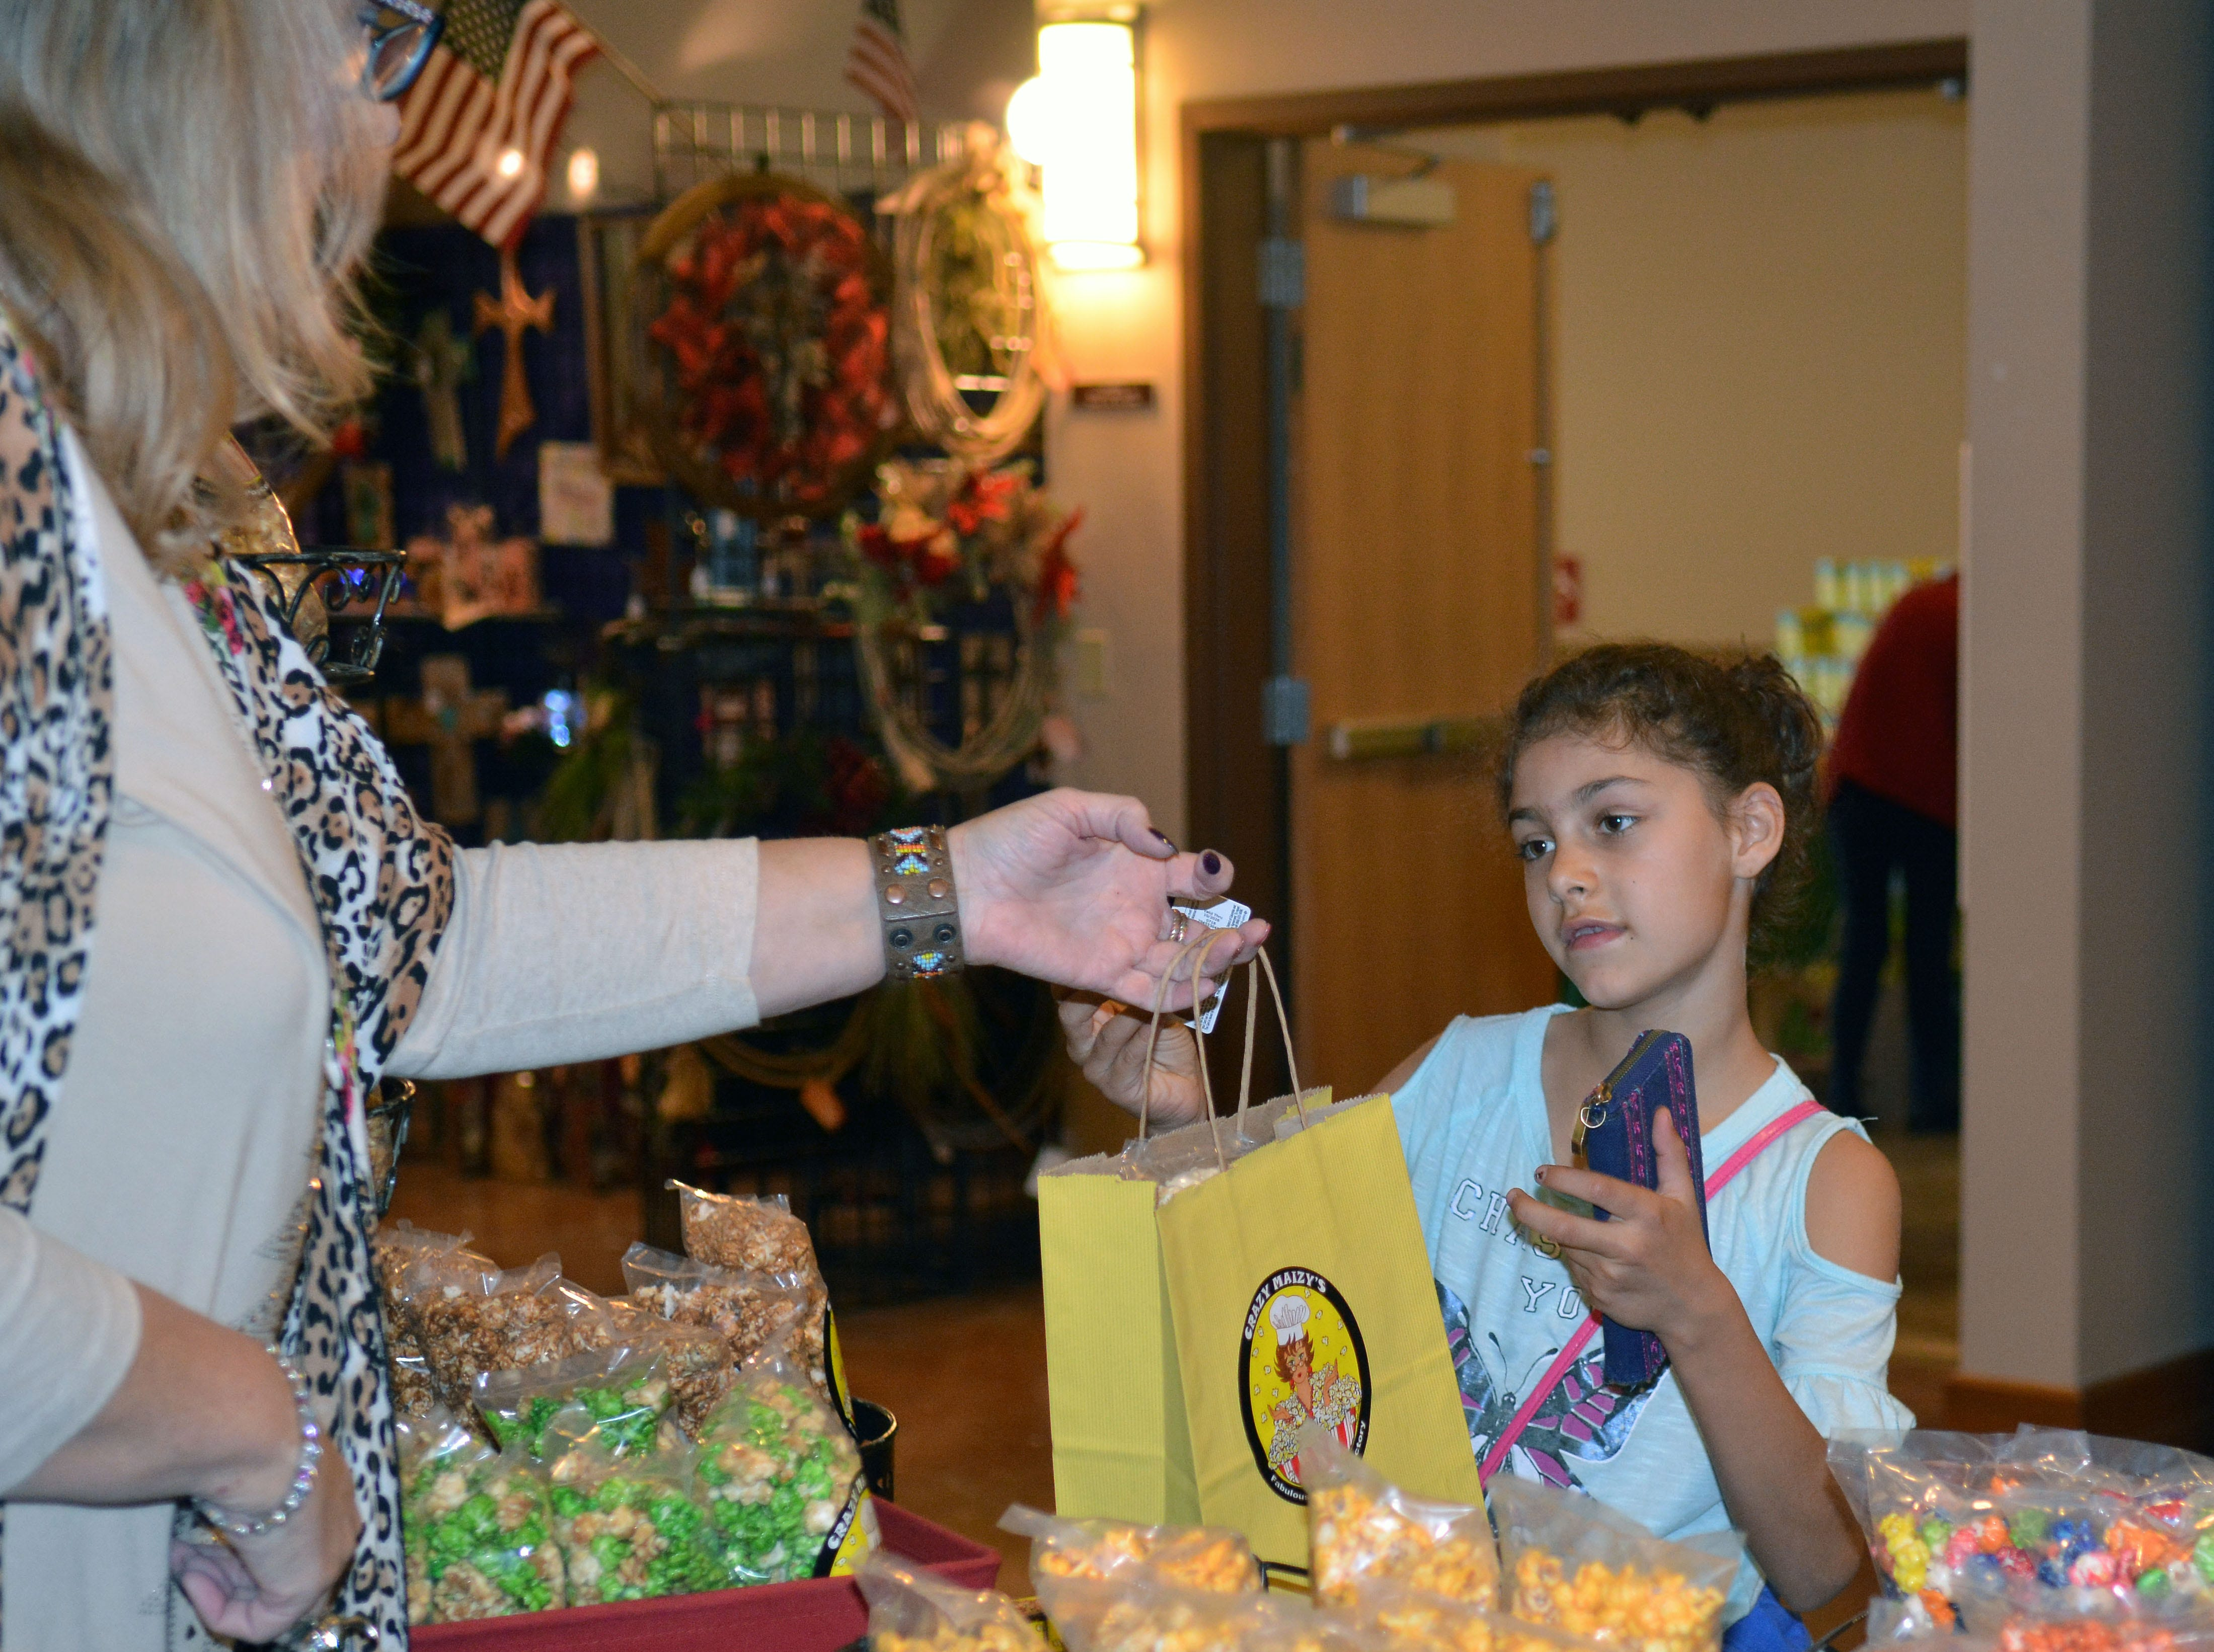 Eight-year-old Persephonie Cullins makes a popcorn purchase from Crazy Maizy's during Saturday's HomeGrown event at the Farm & Ranch Heritage Museum.   Photo taken 11/17/18.